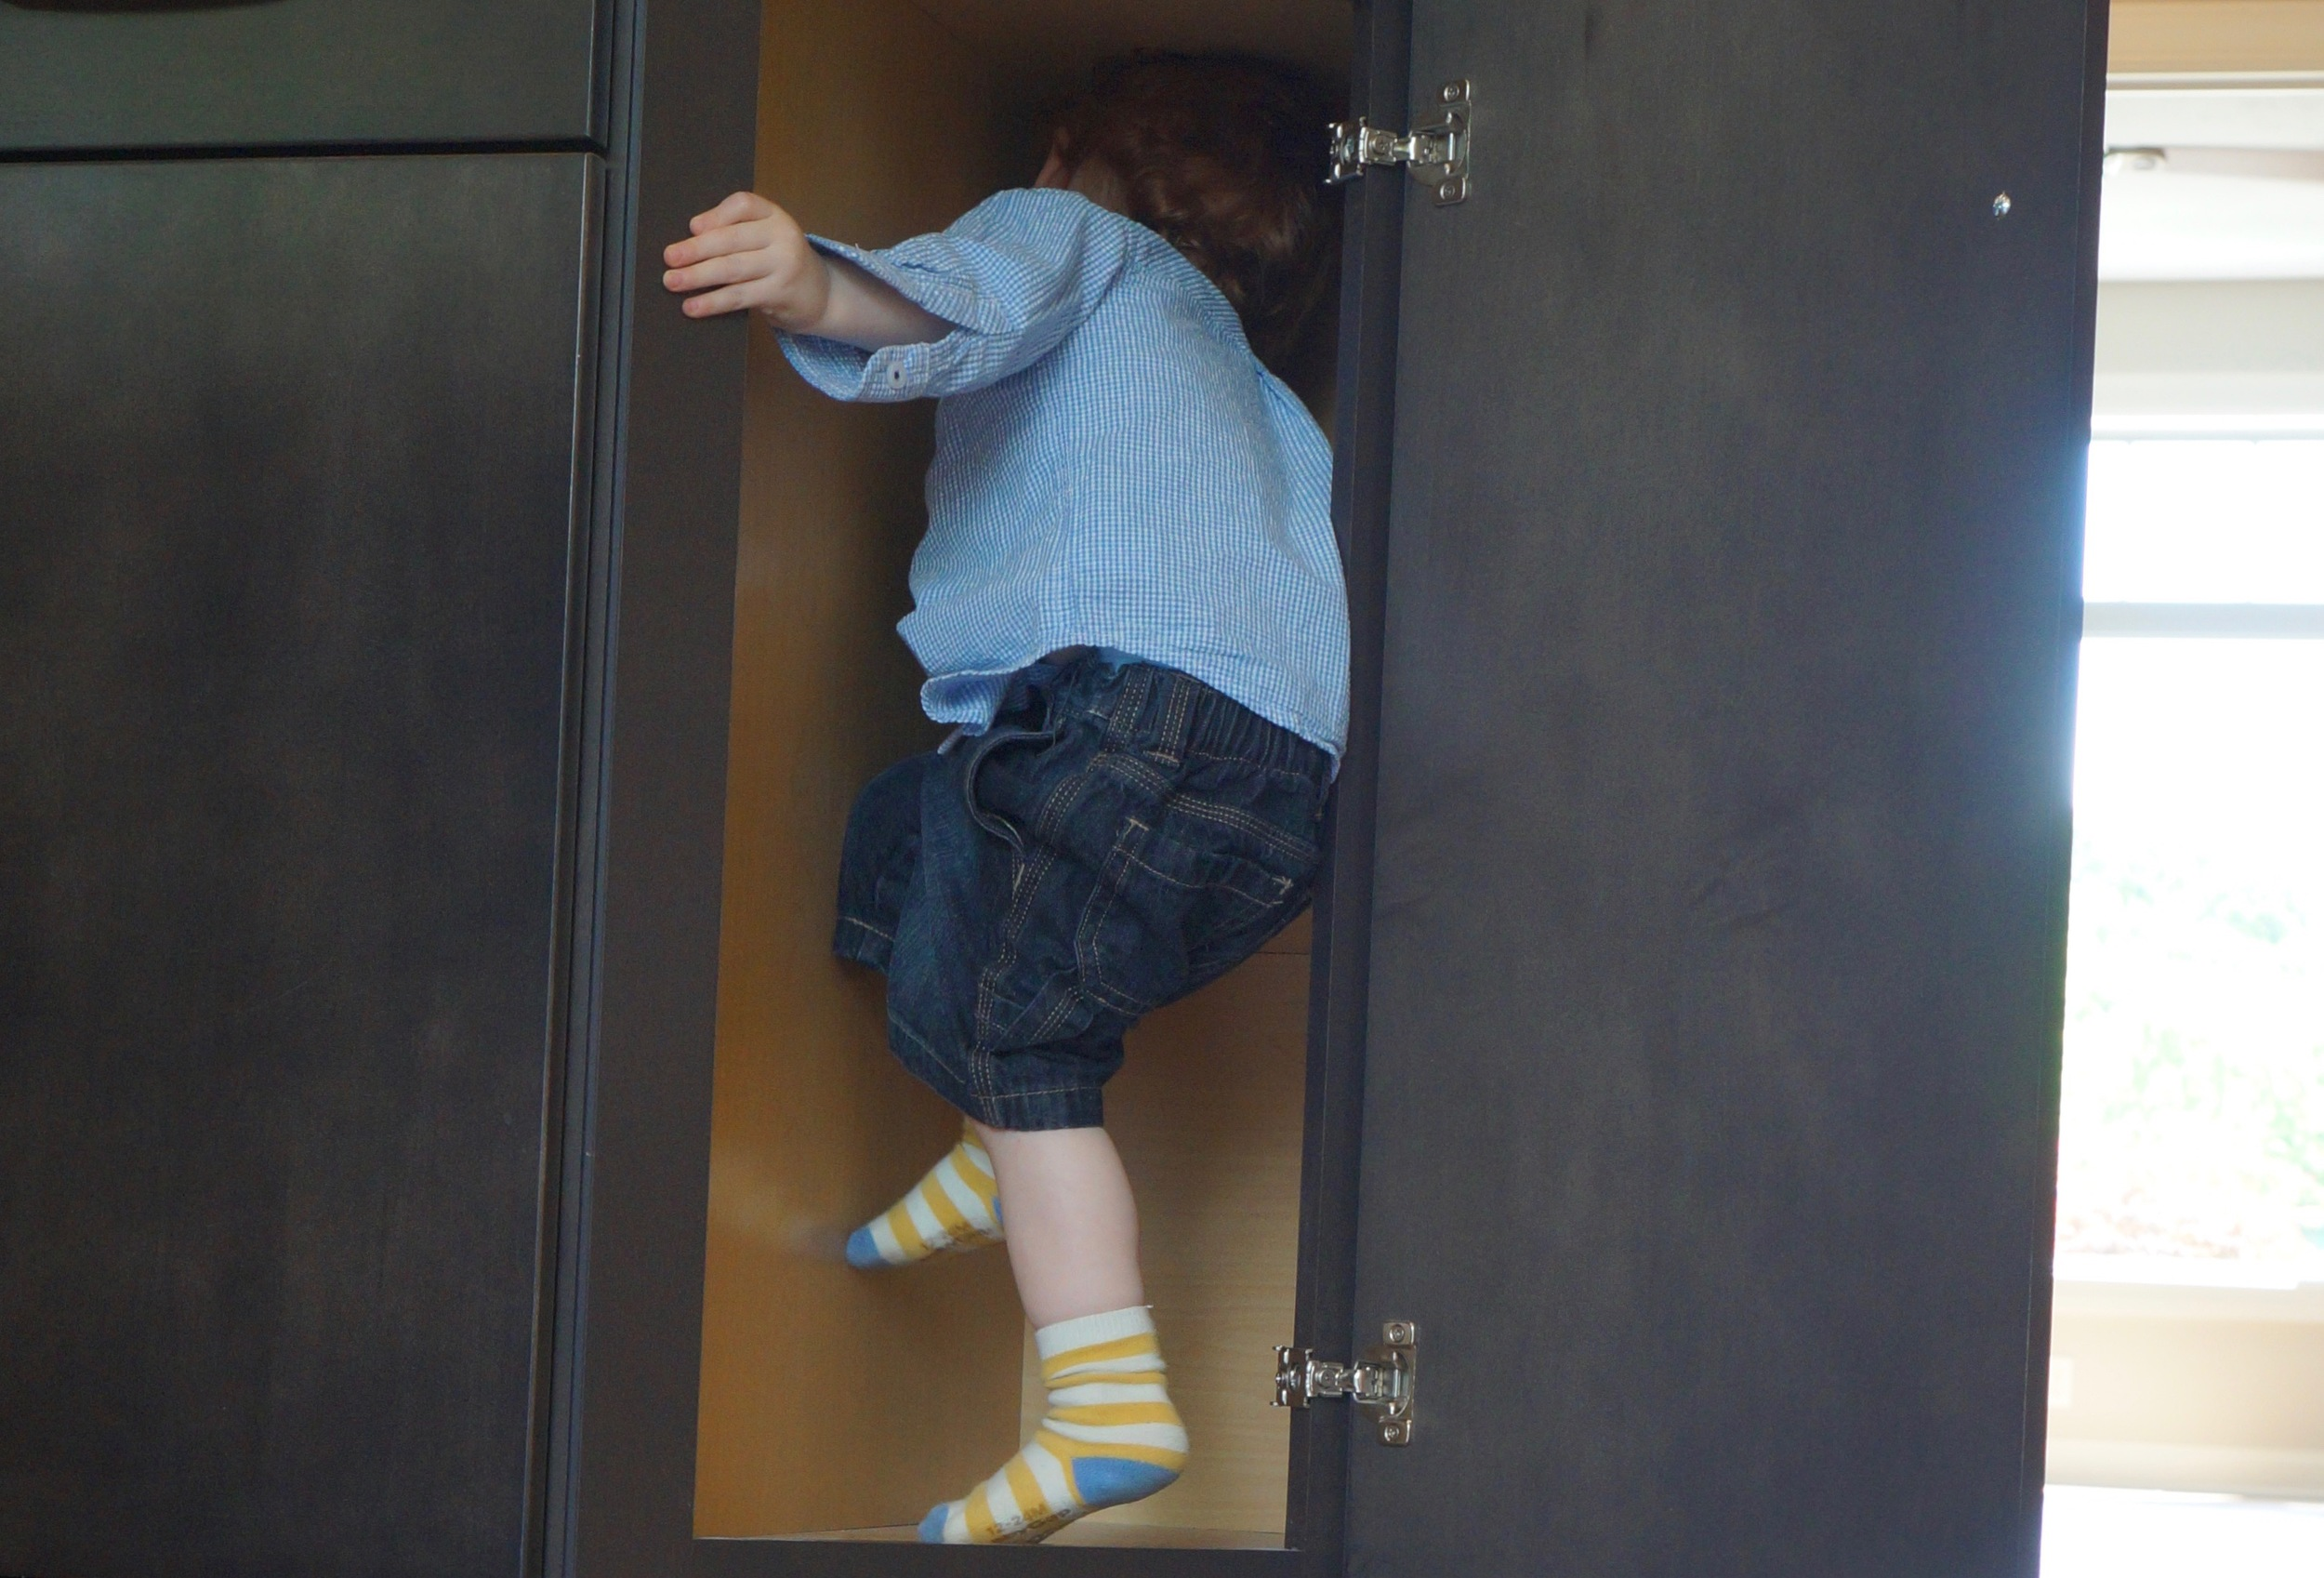 Put your kids to work inspecting all the nooks in your soon-to-be home.